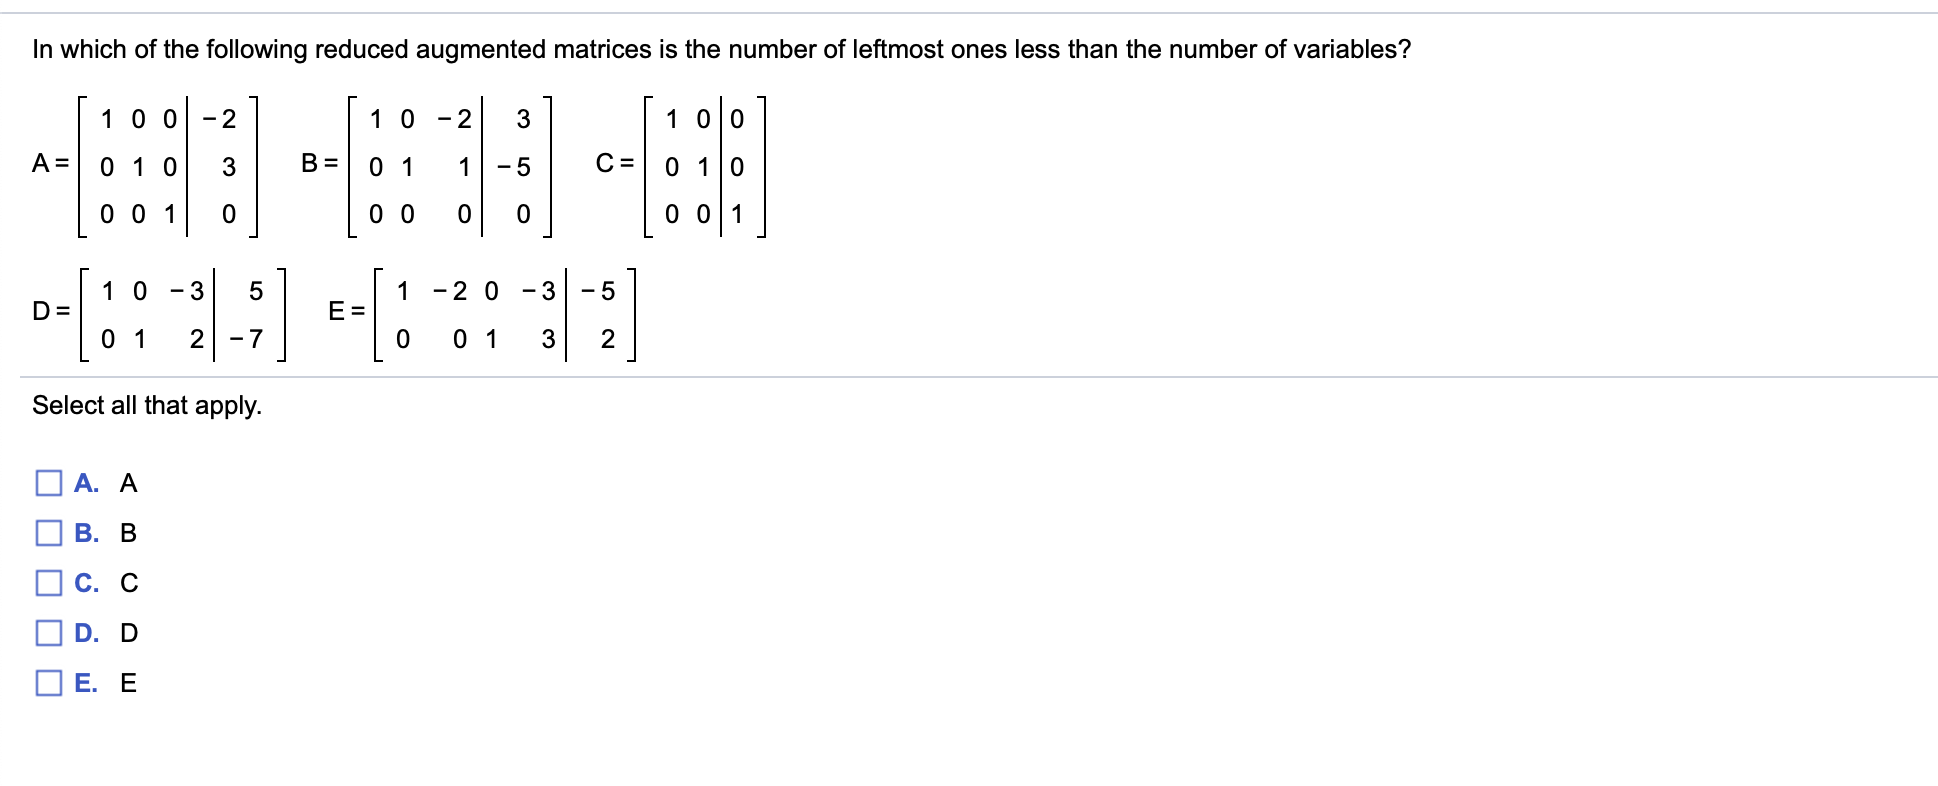 In which of the following reduced augmented matrices is the number of leftmost ones less than the number of variables? 1 0 0 1 0 0 2 1 0 2 3 - A = В 0 1 С 0 1 0 0 1 0 3 1 - 5 0 0 1 0 0 0 01 0 1 0 1 -2 0 -3 - 5 D = E 0 1 0 1 2 7 0 3 2 Select all that apply. A. A В. В С. С D. D Е. Е